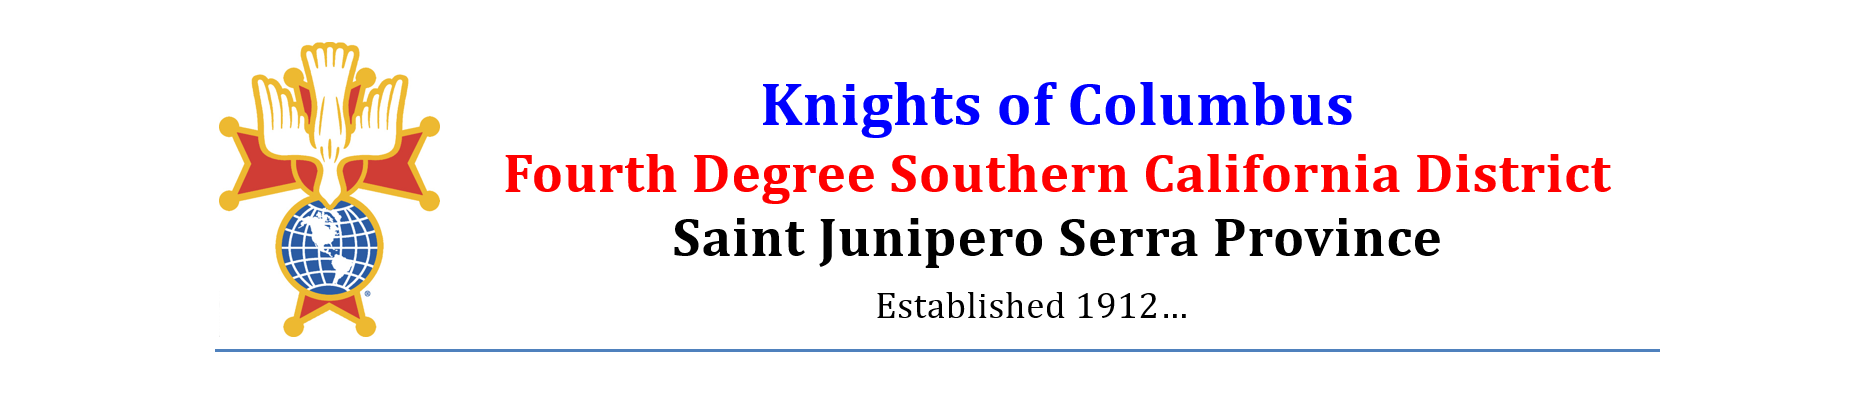 Knights of Columbus - Fourth Degree